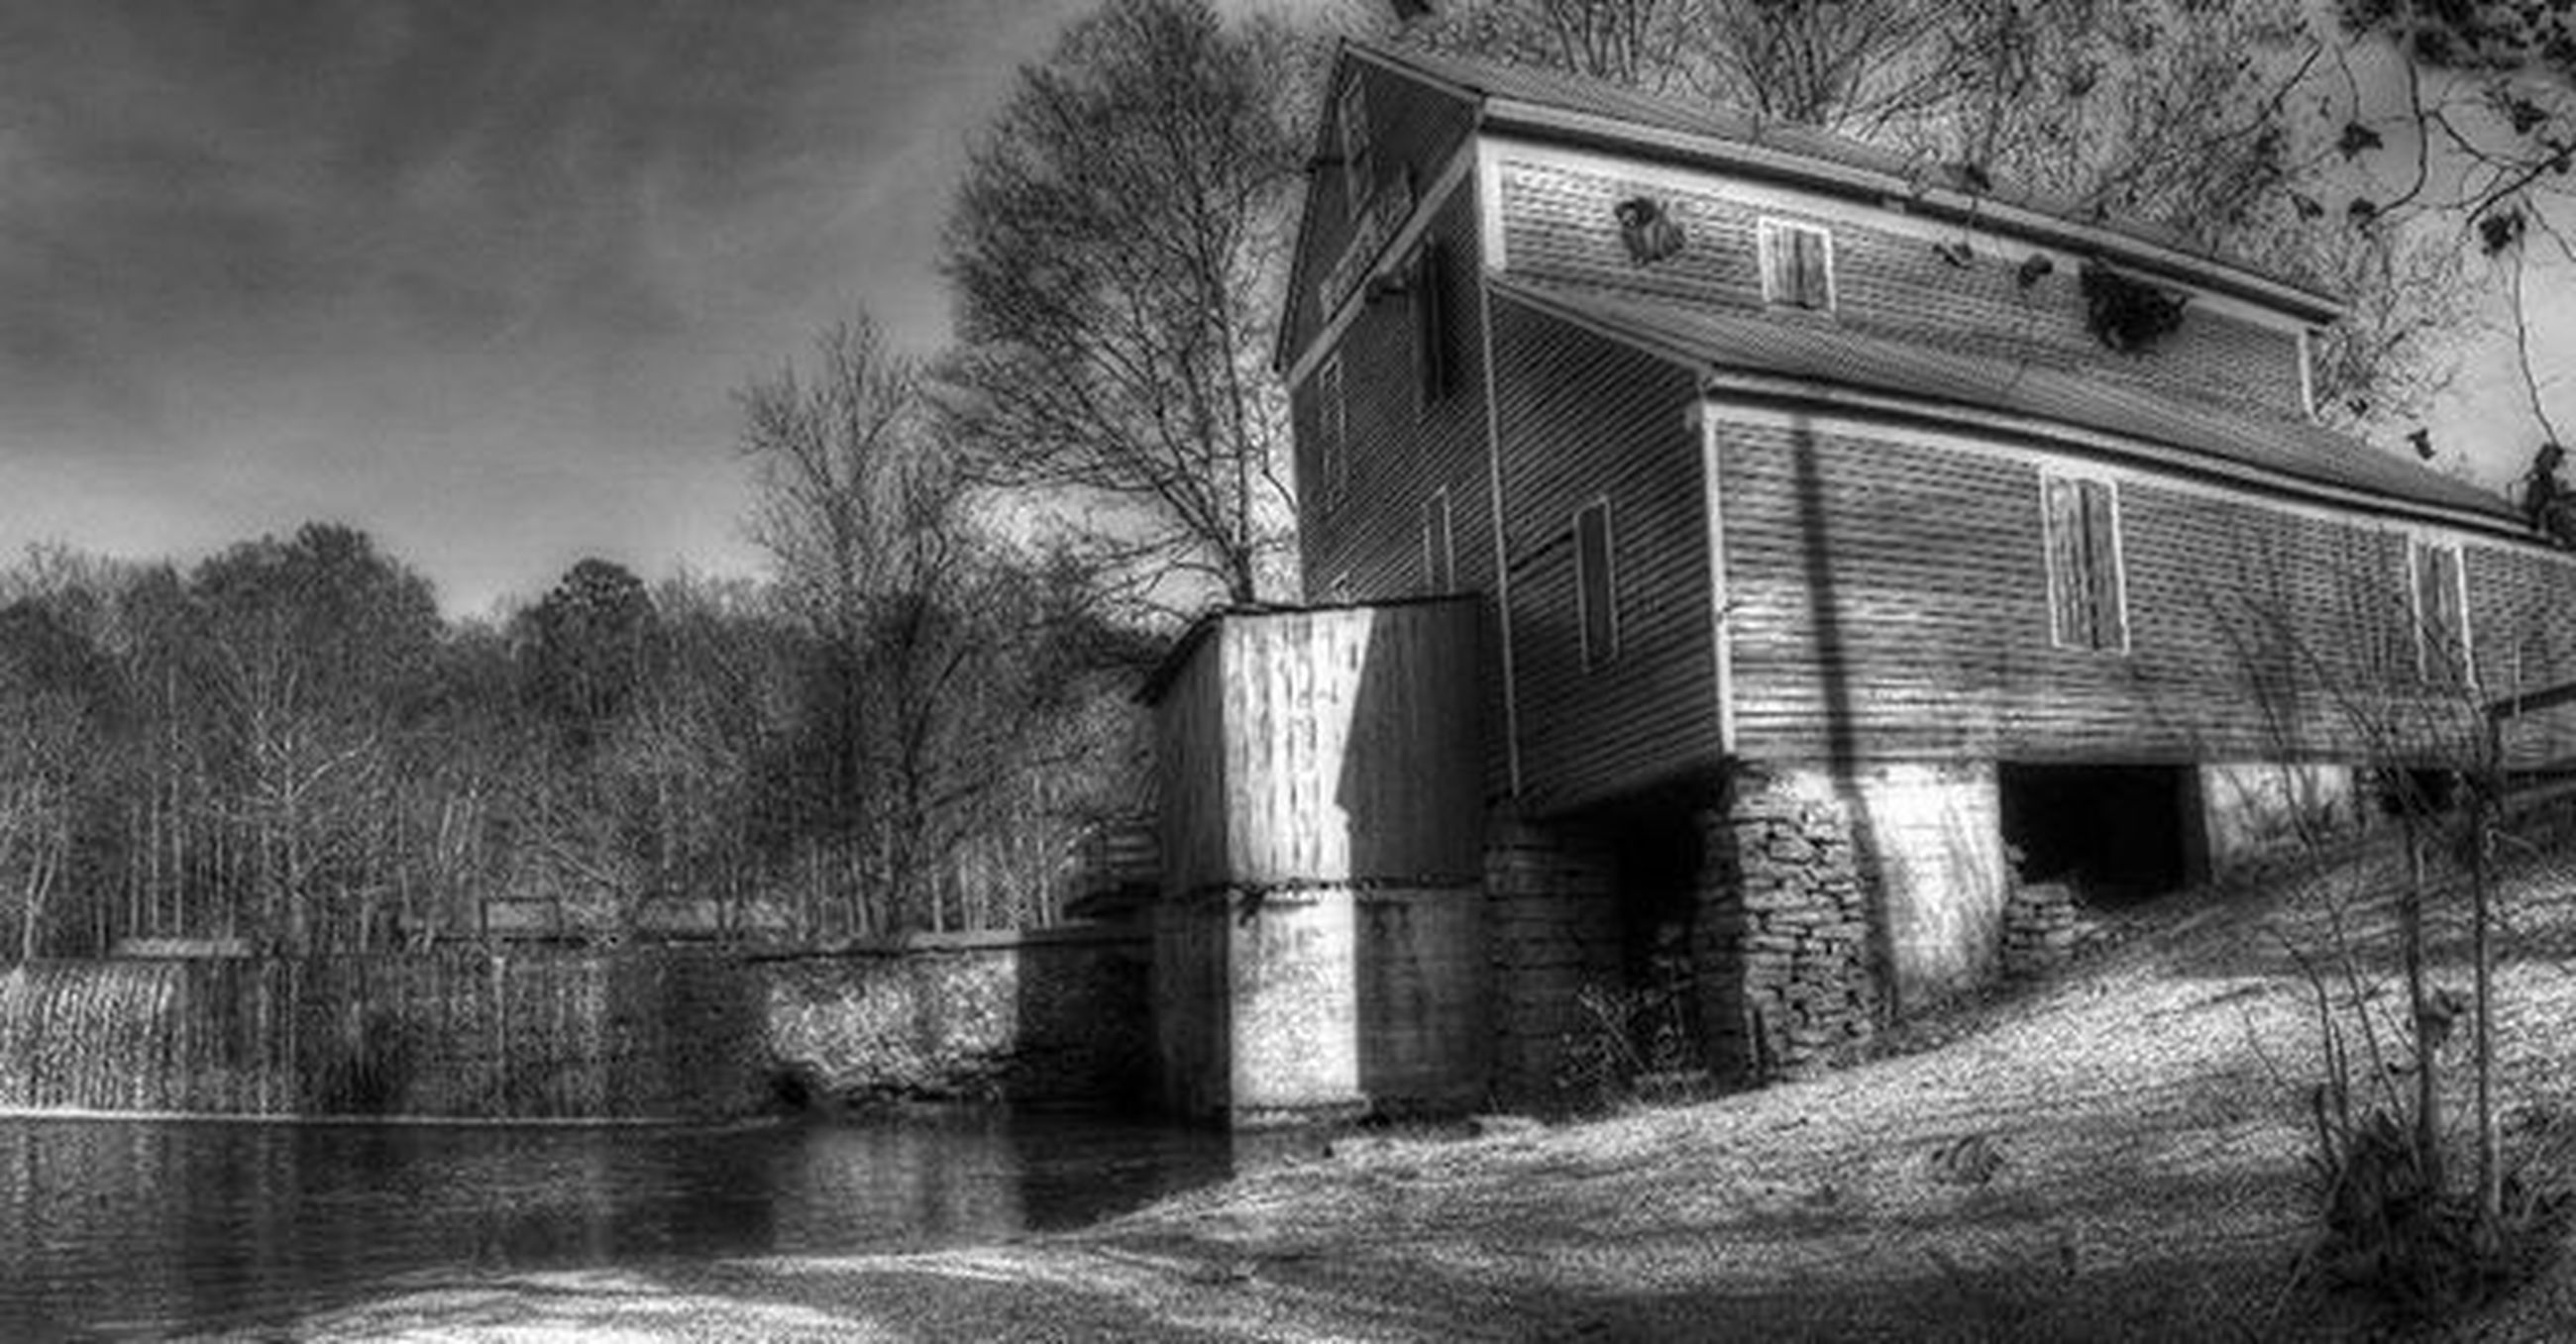 architecture, built structure, building exterior, tree, water, reflection, river, connection, sky, bridge - man made structure, waterfront, house, bare tree, old, no people, outdoors, bridge, abandoned, nature, day